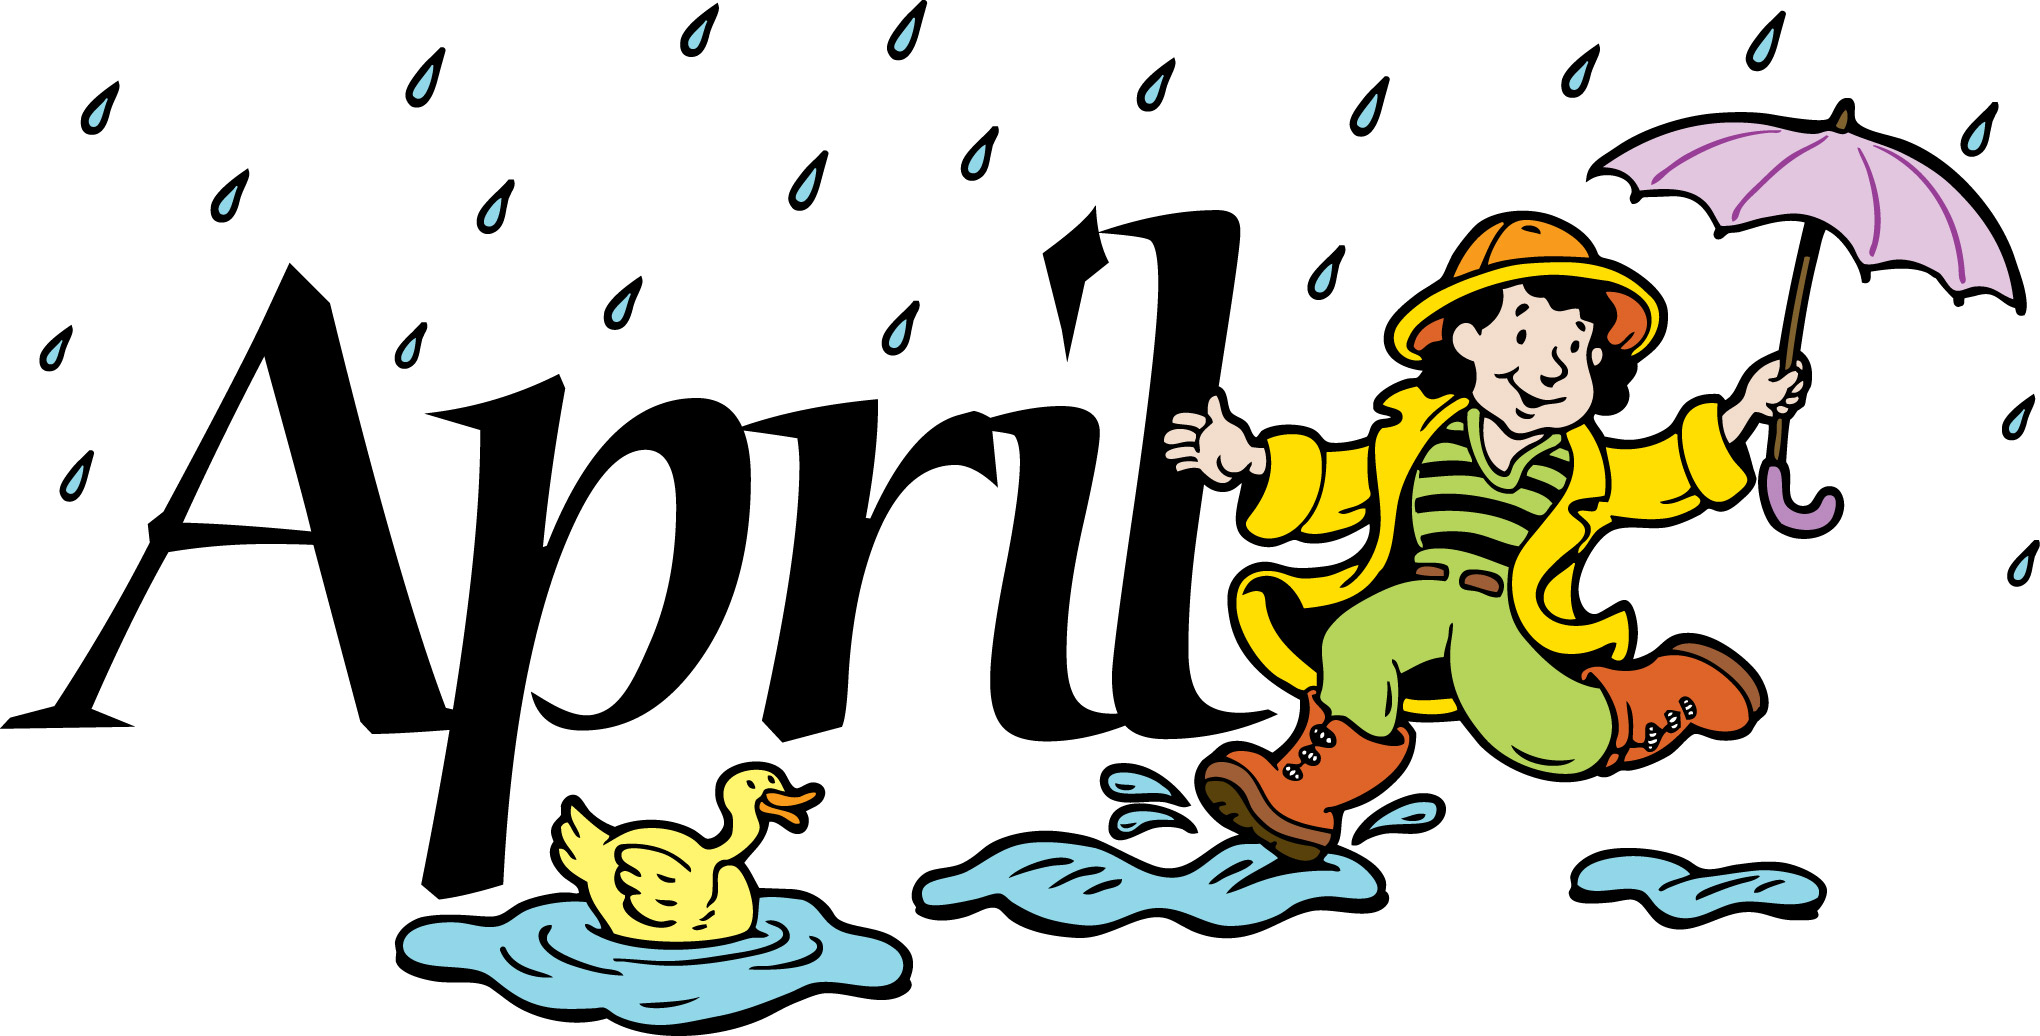 April clipart month, April month Transparent FREE for.